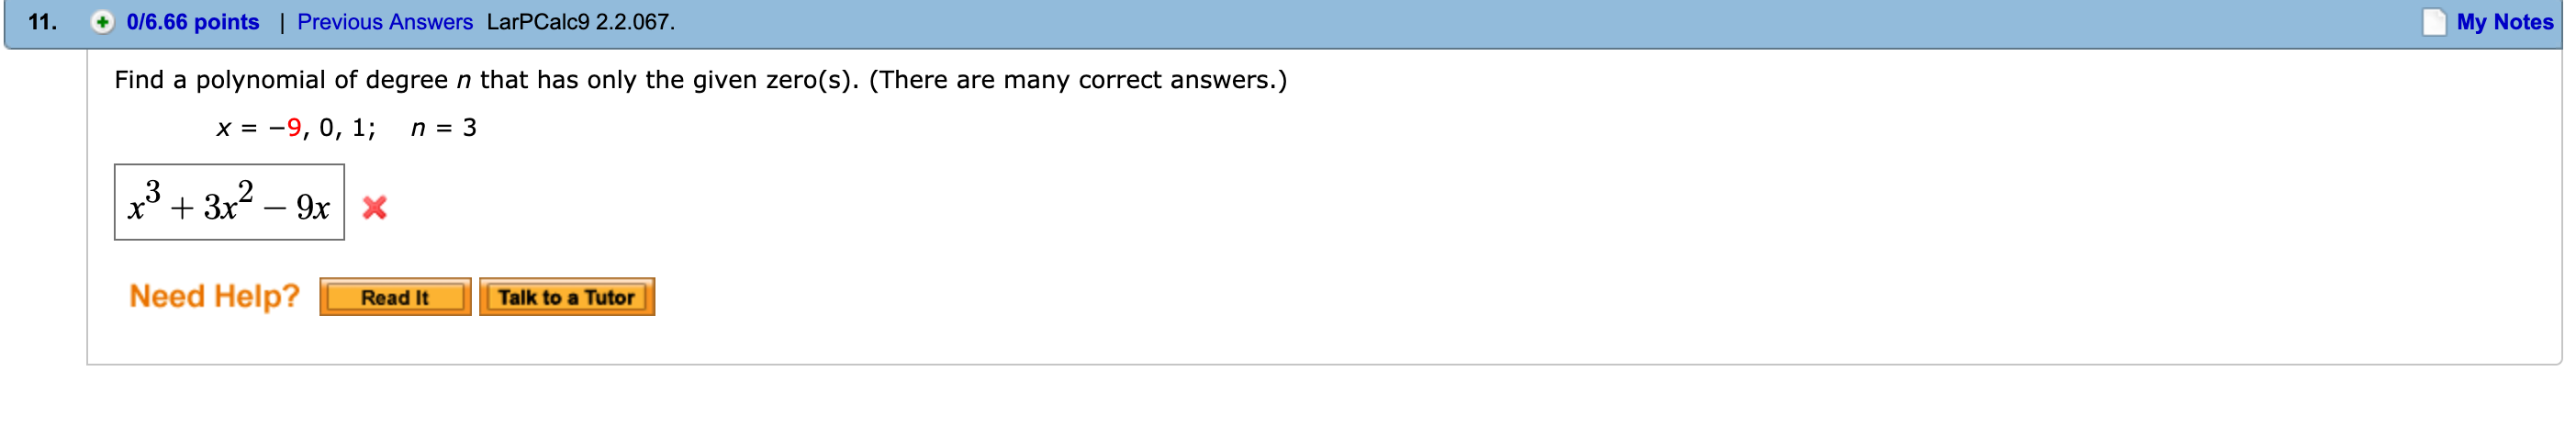 0/6.66 points | Previous Answers LarPCalc9 2.2.067. My Notes Find a polynomial of degree n that has only the given zero(s). (There are many correct answers.) x=-9, 0, 1; n=3 Need Help Read It Talk to a Tutor